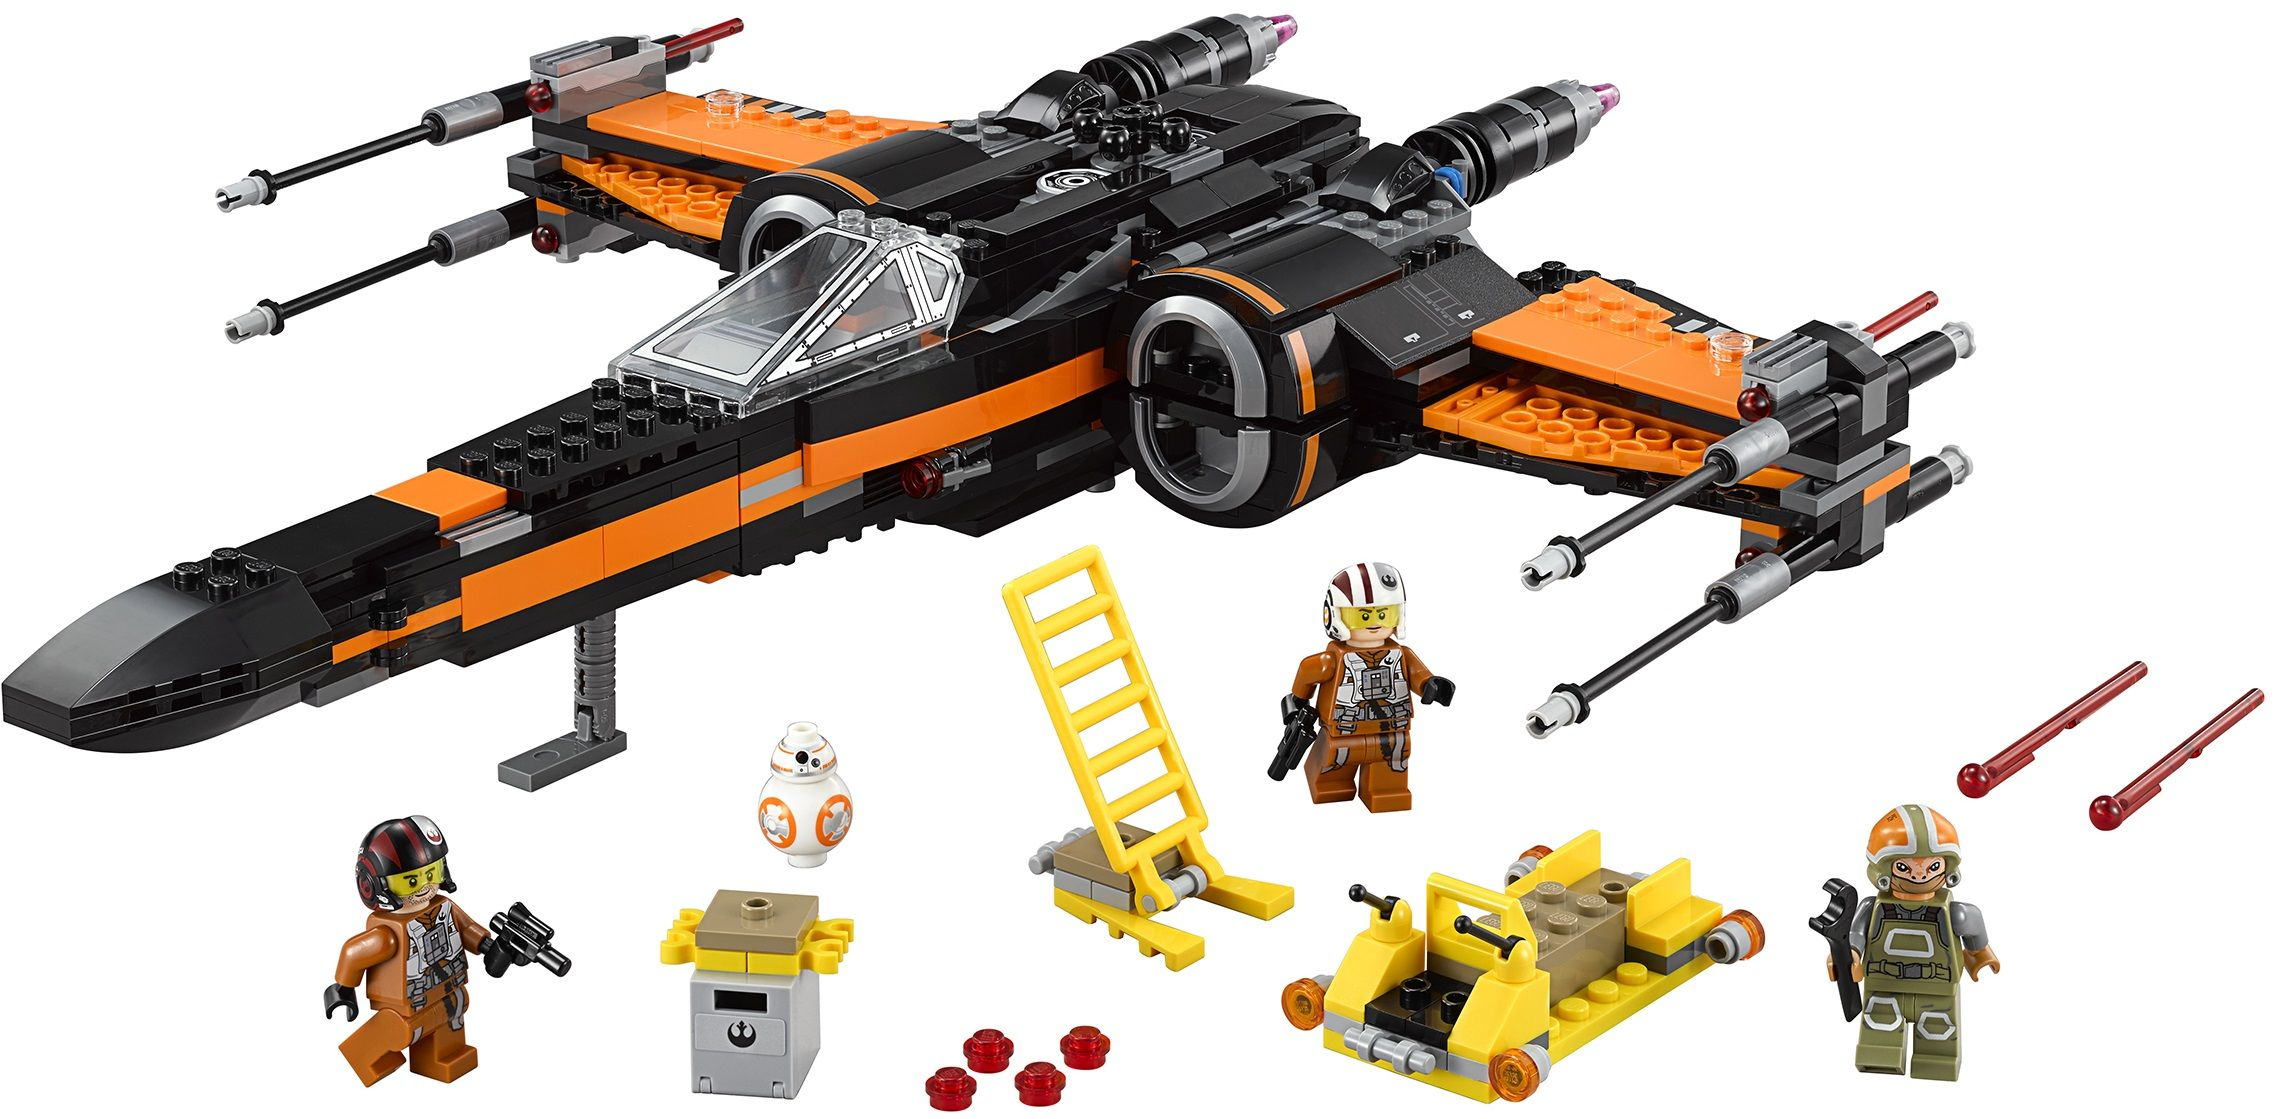 Star Wars The Force Awakens Official Lego Set Images ...